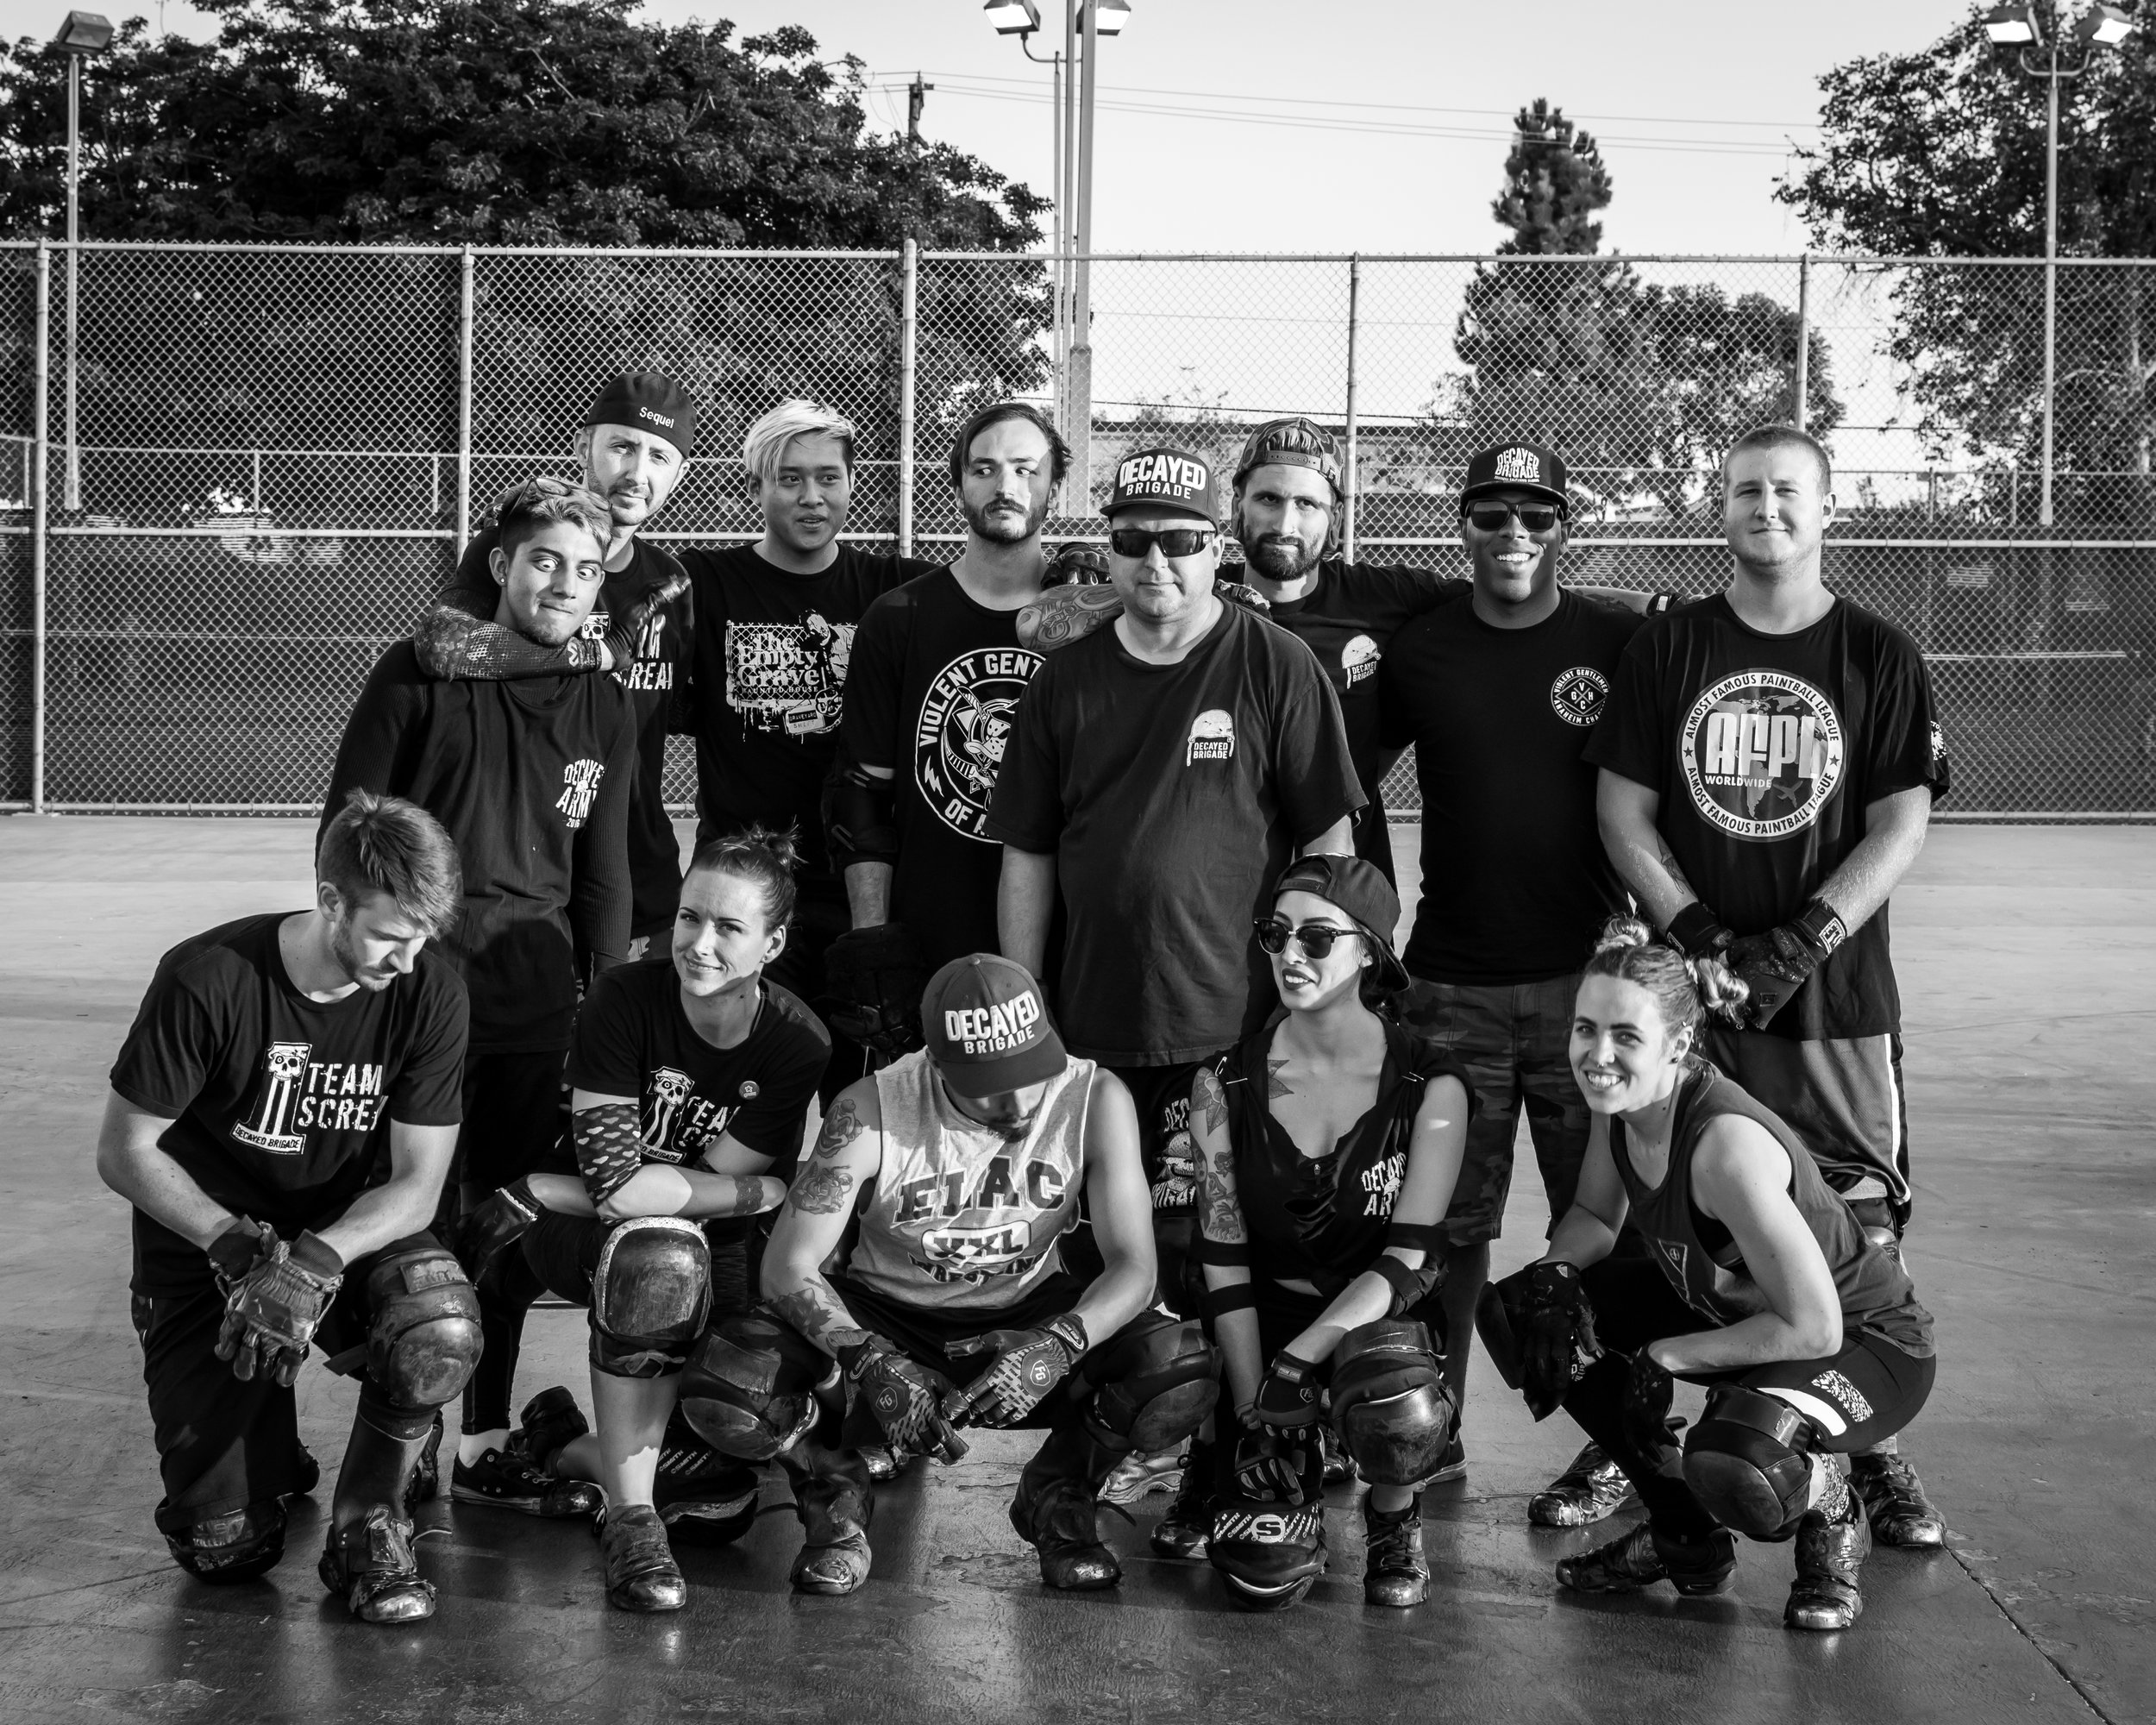 Top Row: James Contreras, Chase McCullough, Sebastian Lam, Trey Yasger, Jeremy Shumake, Michael Stewart, Greg Daniels, Andrew Mummert Bottom Row: Eric Saunders, Veronica Nihart, Elijah Padilla, Naomi Haro, Ruth Duckworth    The Decayed Brigade is a group of dedicated, hard working men and women who put on high energy shows at various Halloween conventions that include choreographed routines, spins, sliding under bars and jumping over fellow Brigade members. They constantly push the envelope and challenge each other to go bigger and faster with their tricks and jumps. What started as a scare tactic at Knott's Scary Farm several years ago has turned into a fascinating spectacle of tricks that draw huge crowds at events such as  www.midsummerscream.org  and Scare LA. Their show gets bigger and bigger each year. Last year at one of the events, a group record was set when one of the members slid and jumped 11 other members of the Brigade while they laid side by side on the ground.    Below you will get to meet some of these crazy and fun individuals that make up the Decayed Brigade and learn a little bit about what makes them tick. You'll learn what they feel before a show, how they got started in the Halloween industry and how they prepare for an event. You'll then get a behind the scenes look at the group with some photos from recent practices. Please feel free to leave comments and thoughts regarding this blog, the team, the shows you've seen. We want to hear it all. Thank you and enjoy.